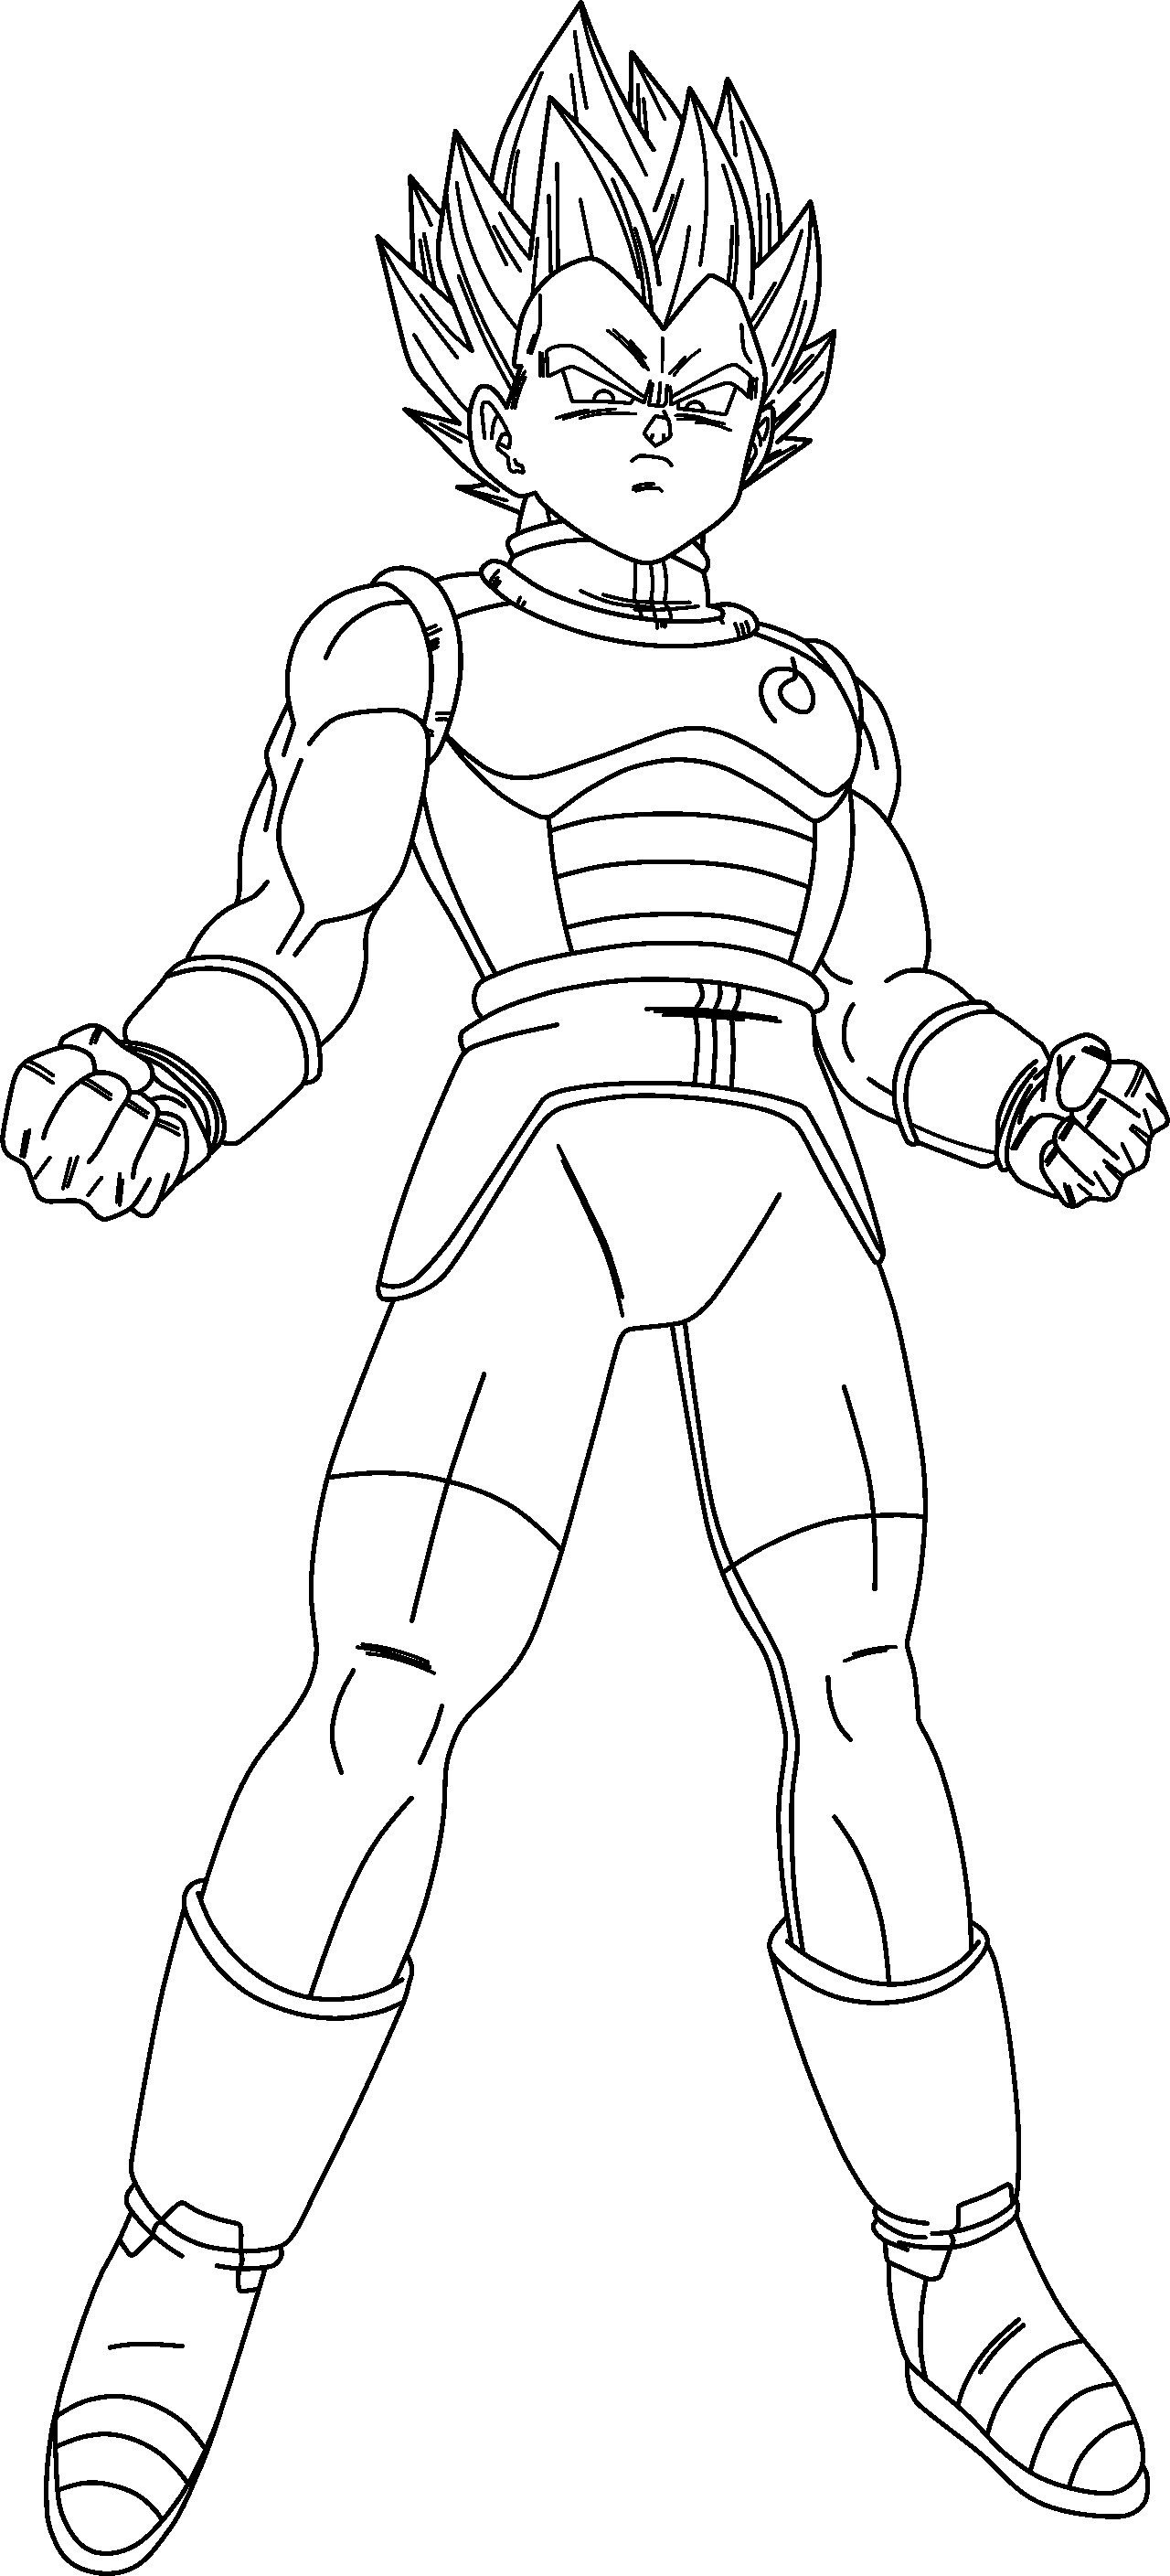 61 Top Dragon Ball Coloring Pages Goku Images & Pictures In HD